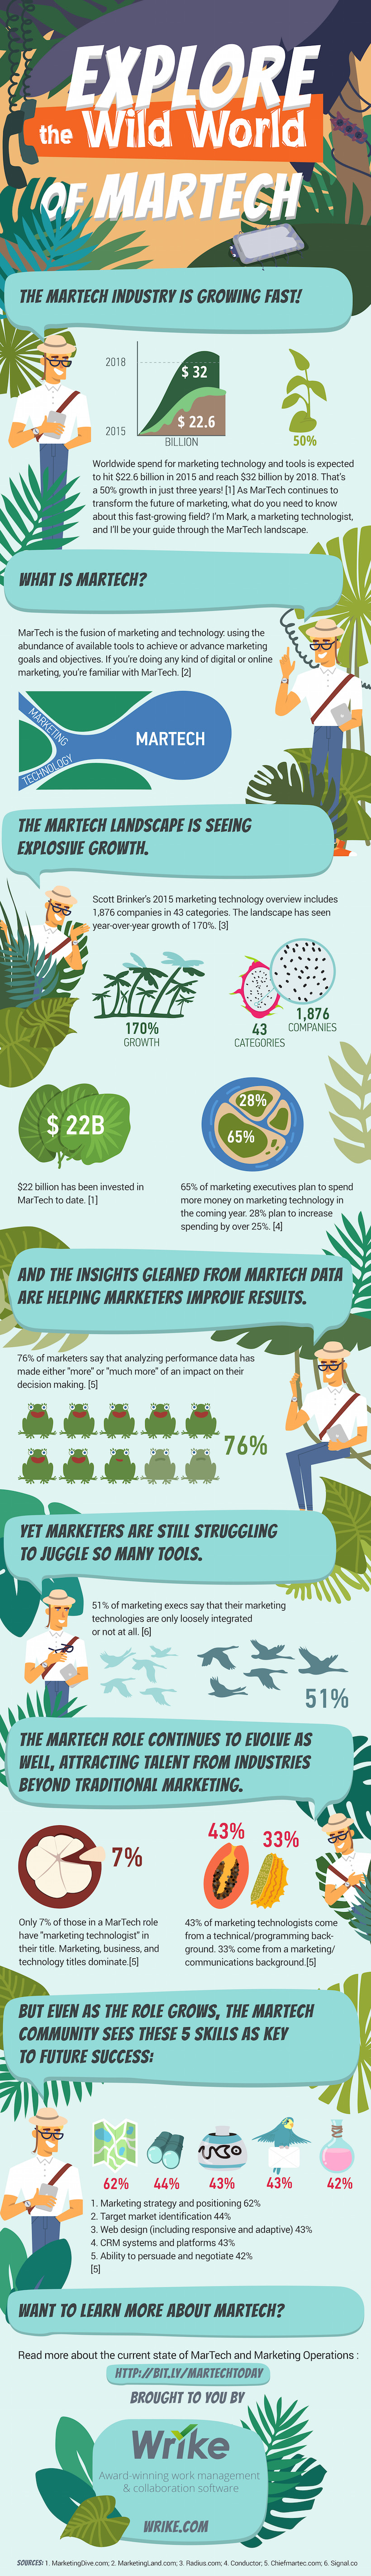 The Guide to MarTech in 2015 (Infographic)